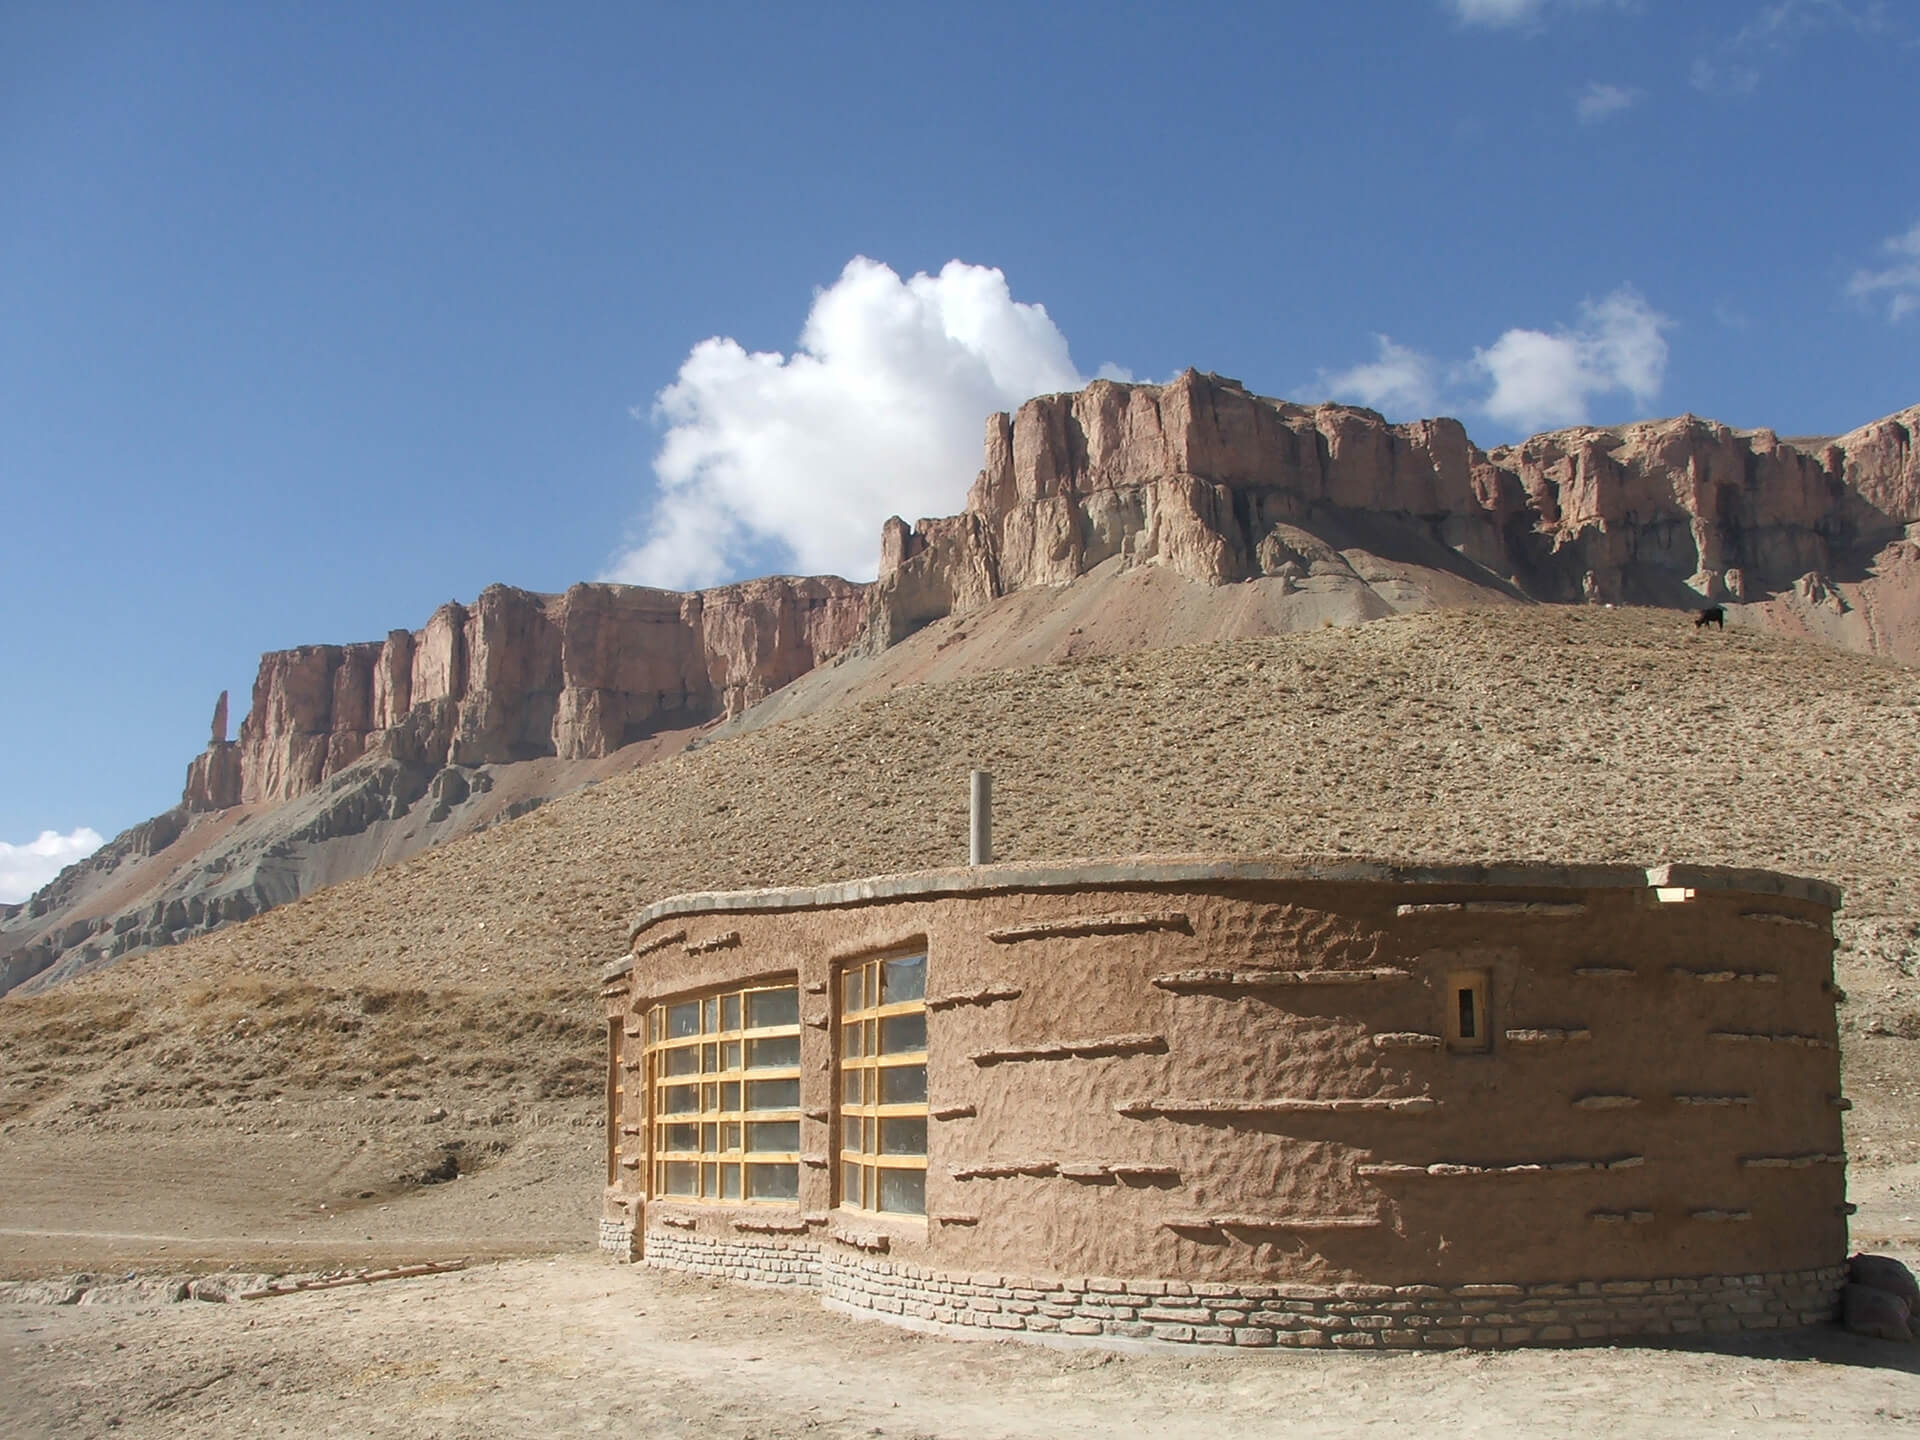 Band-e-Amir National Park Visitor-cum-Community Center, Bamyan, Afghanistan | Cross Border Conversations | Pradip Krishen X Prof. Anne Feenstra | STIR X LOCO Design